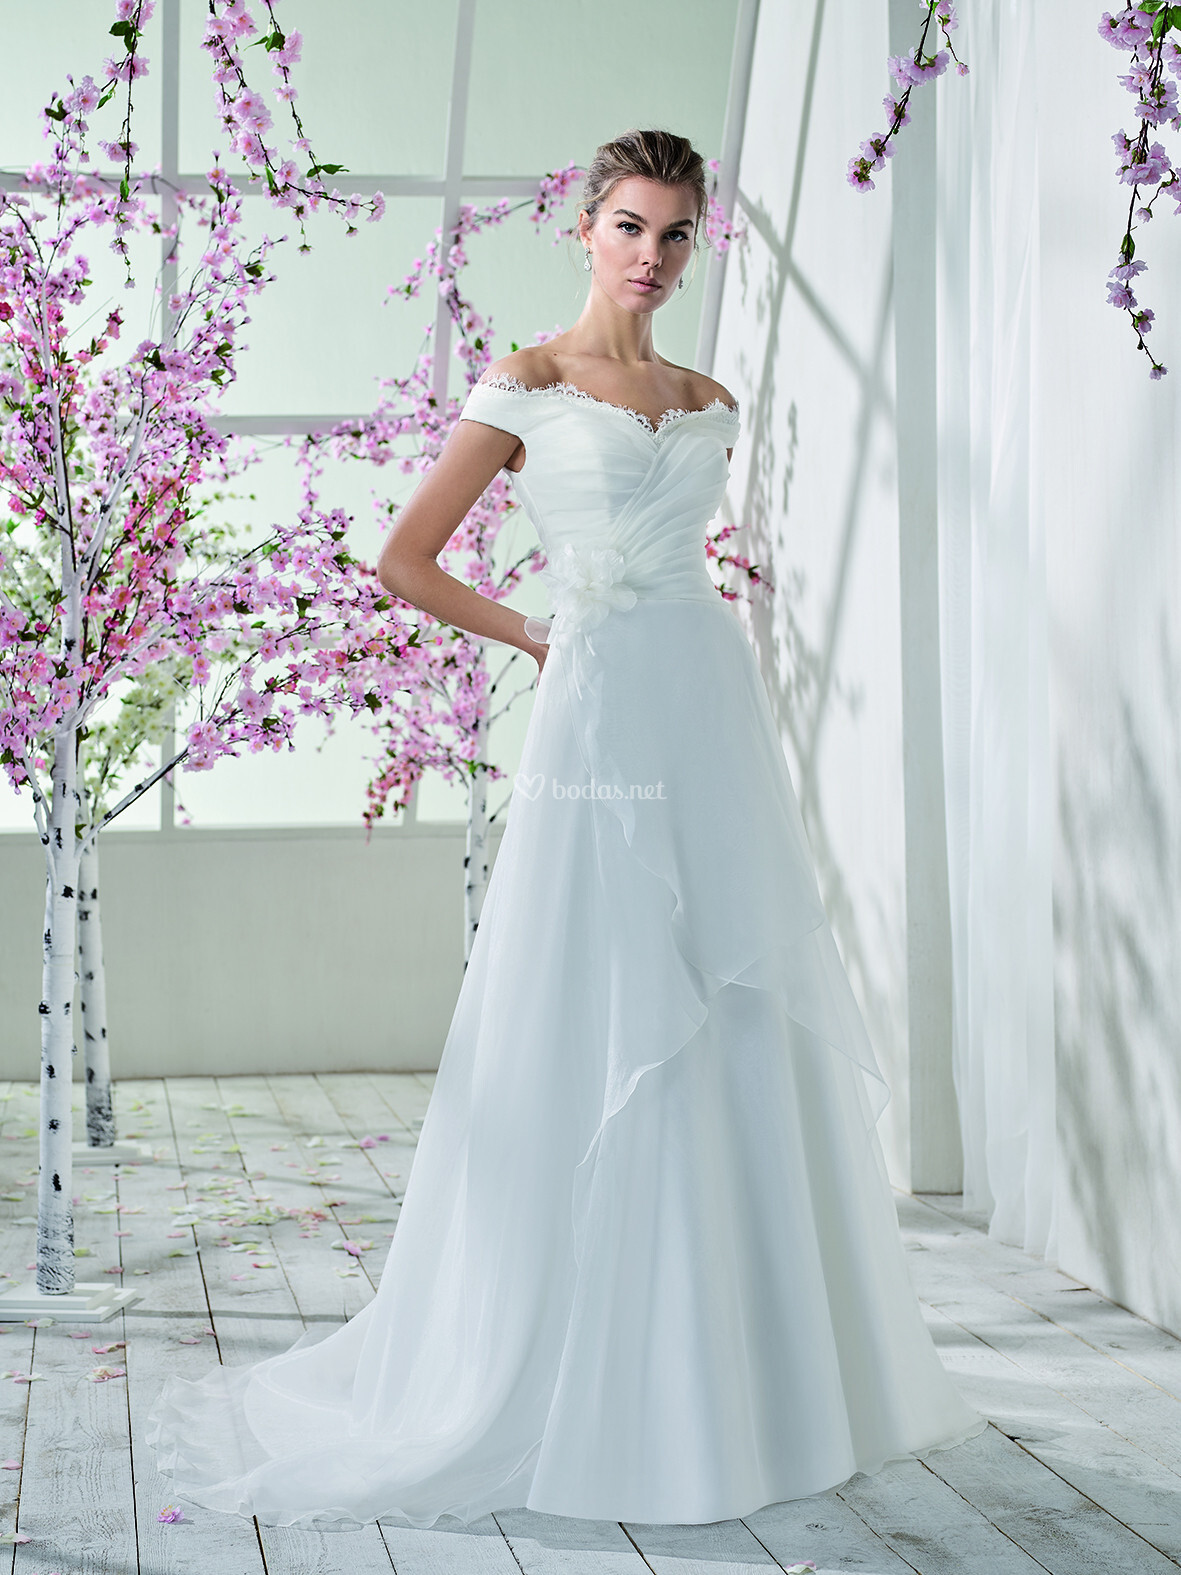 Beautiful Cinturones Vestidos Novia Gallery - All Wedding Dresses ...